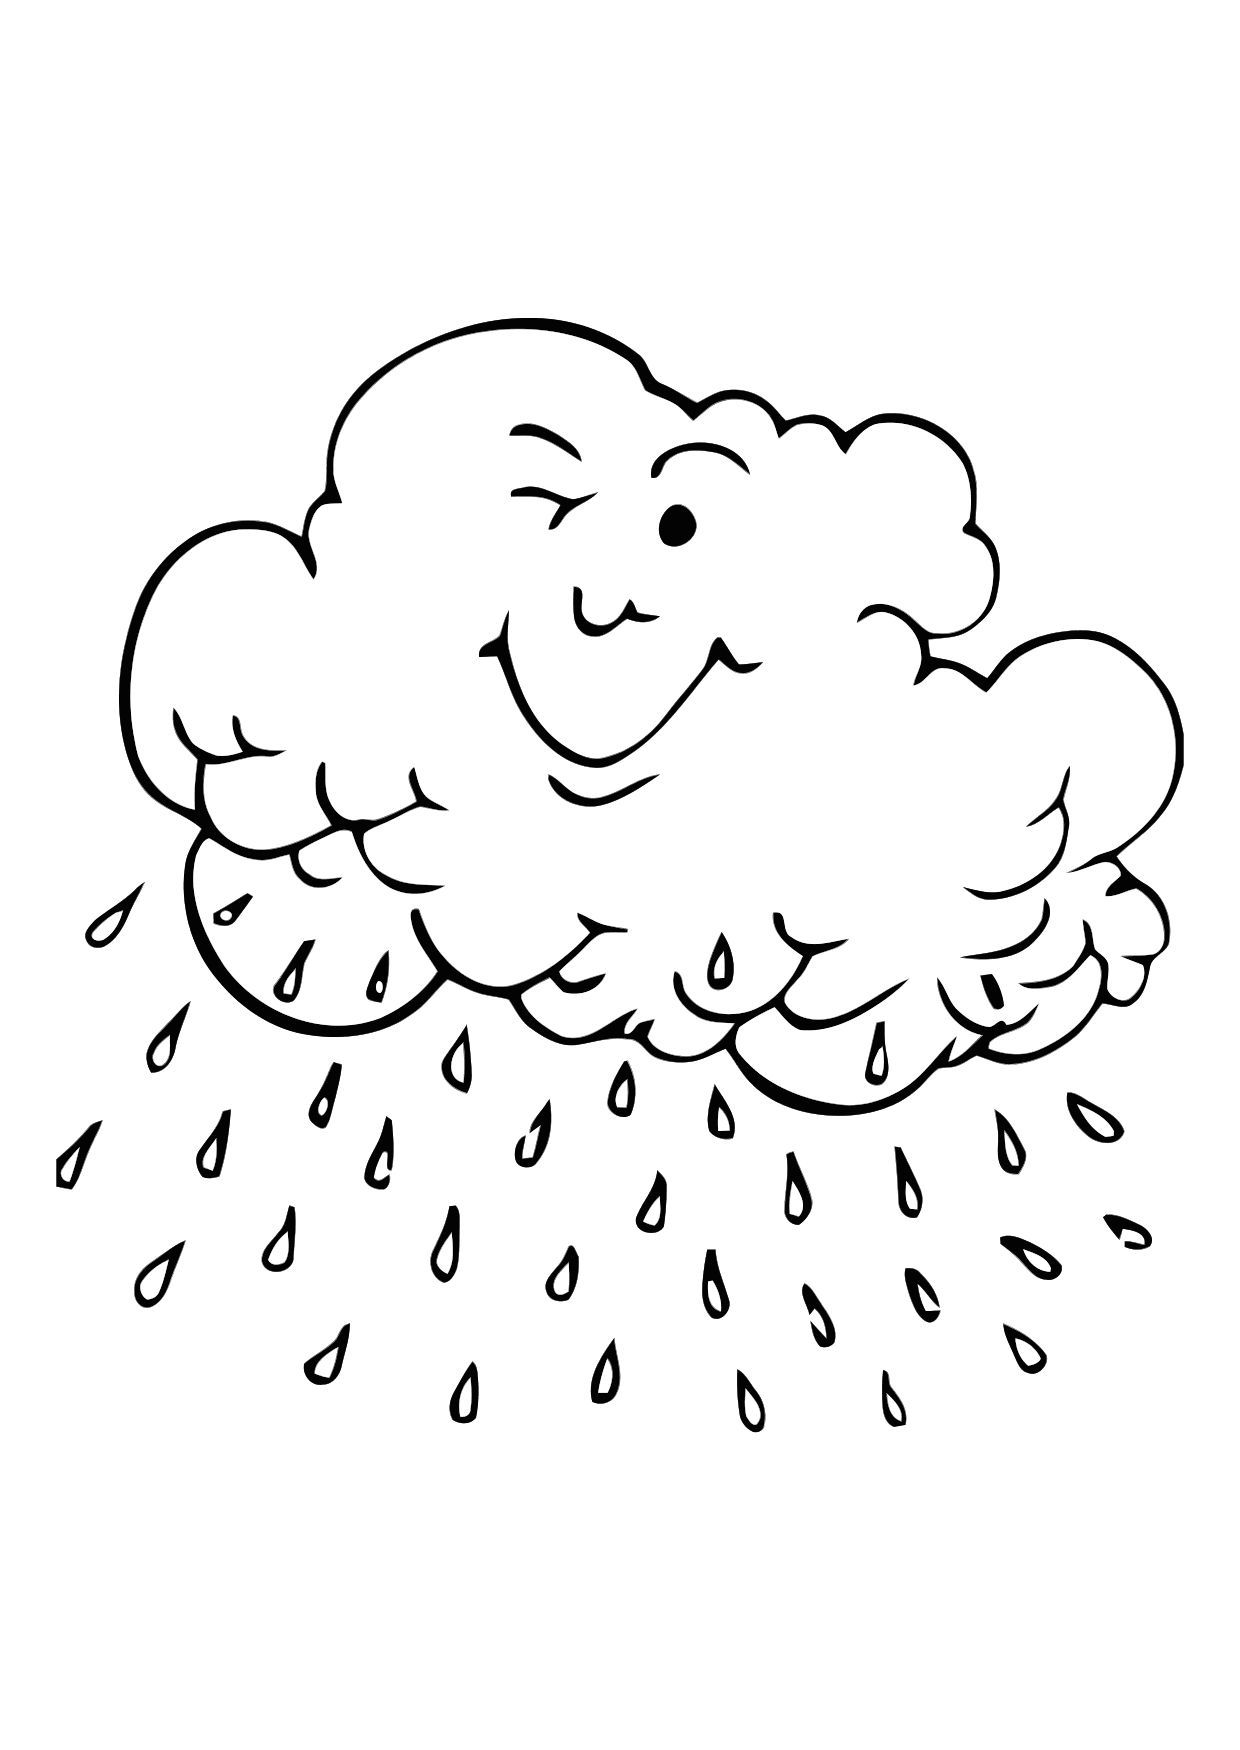 Rain Cloud Colouring Page Google Search Coloring Pages Inspirational Coloring Pages Fall Coloring Pages